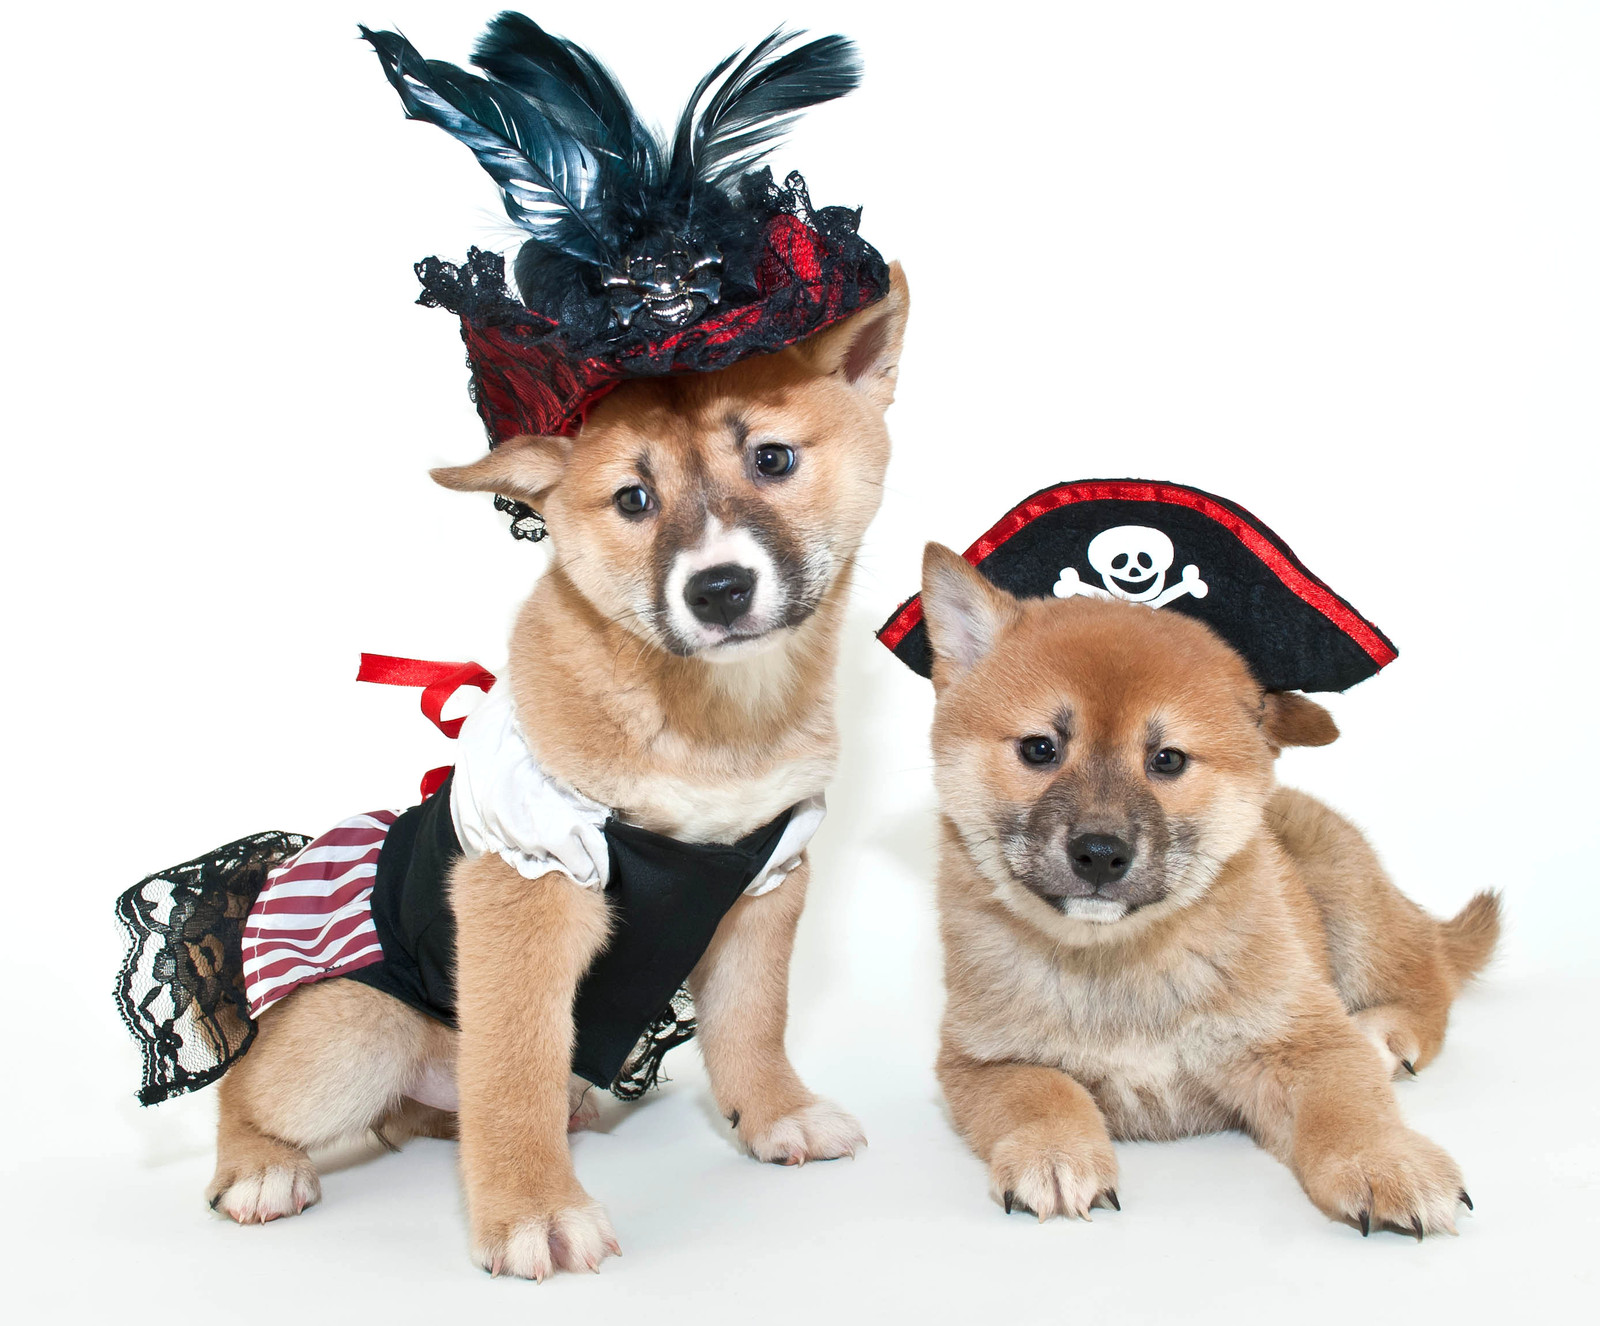 Two Shiba Inu (a breed of dog) puppies. They are small with golden-colored fur. They are both wearing hats; one is wearing a pirate hat and the other is wearing a feather hat.